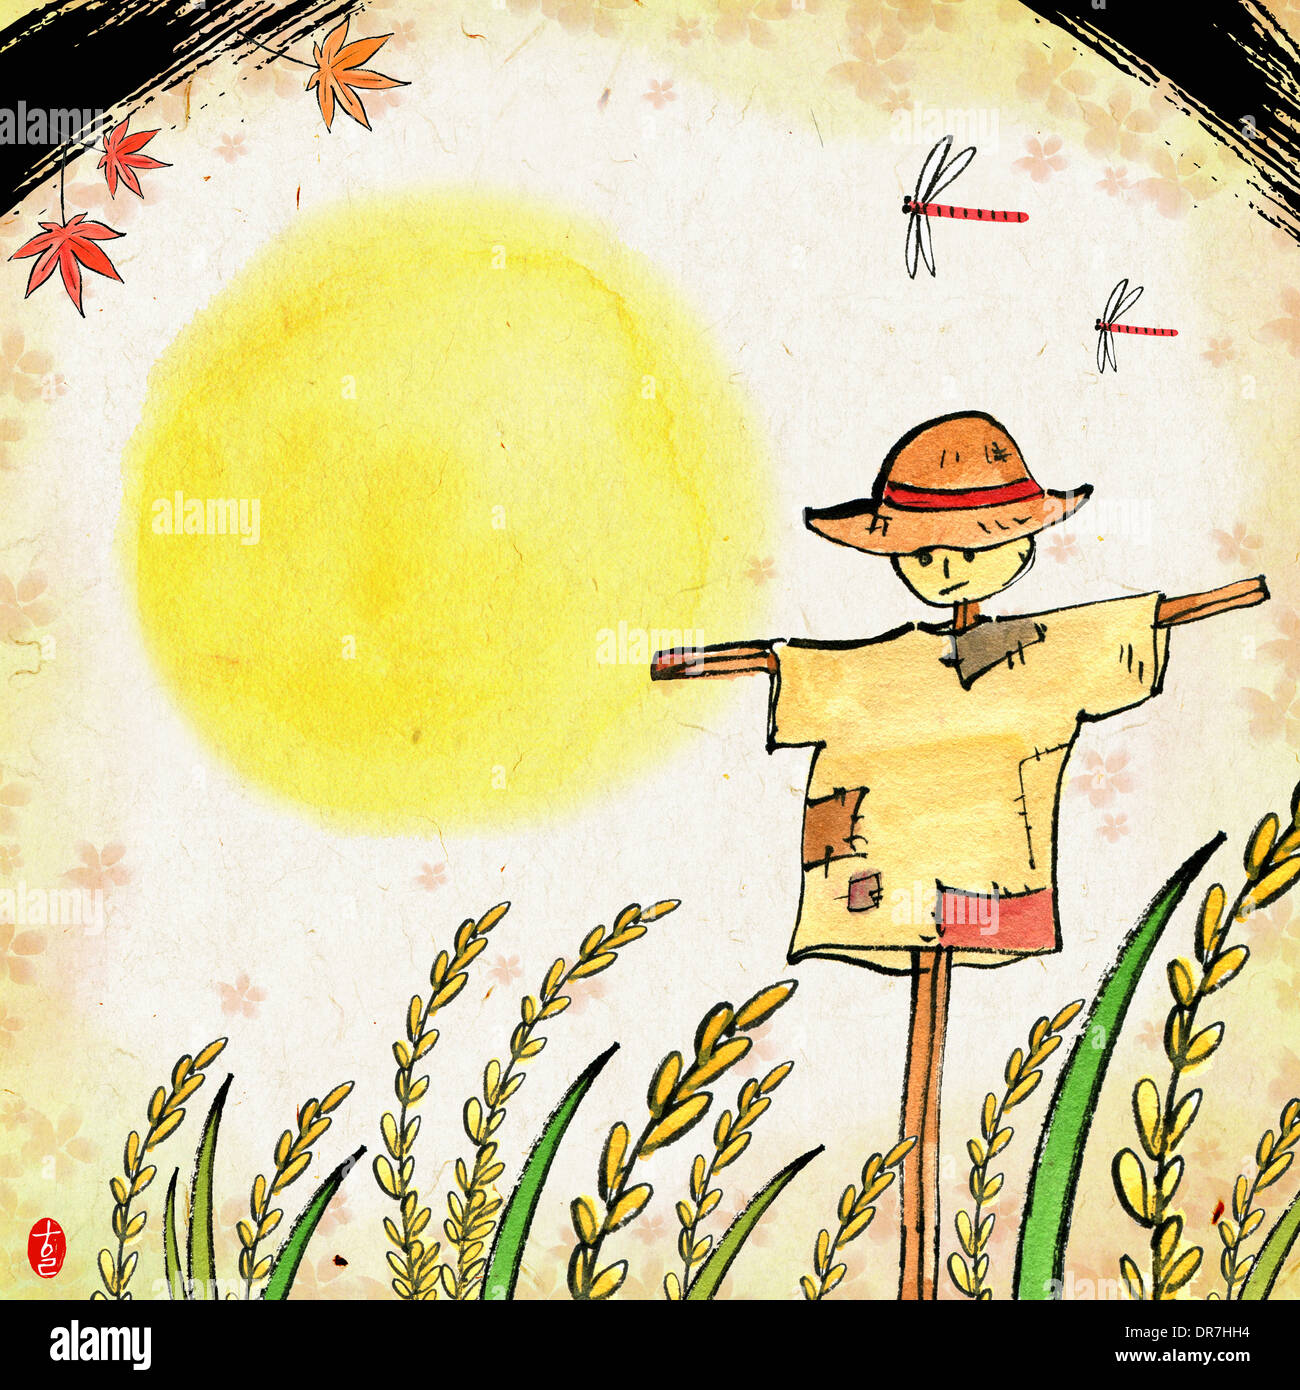 Template Chuseok Korea Tradition Moon Scarecrow Stock Photos ...